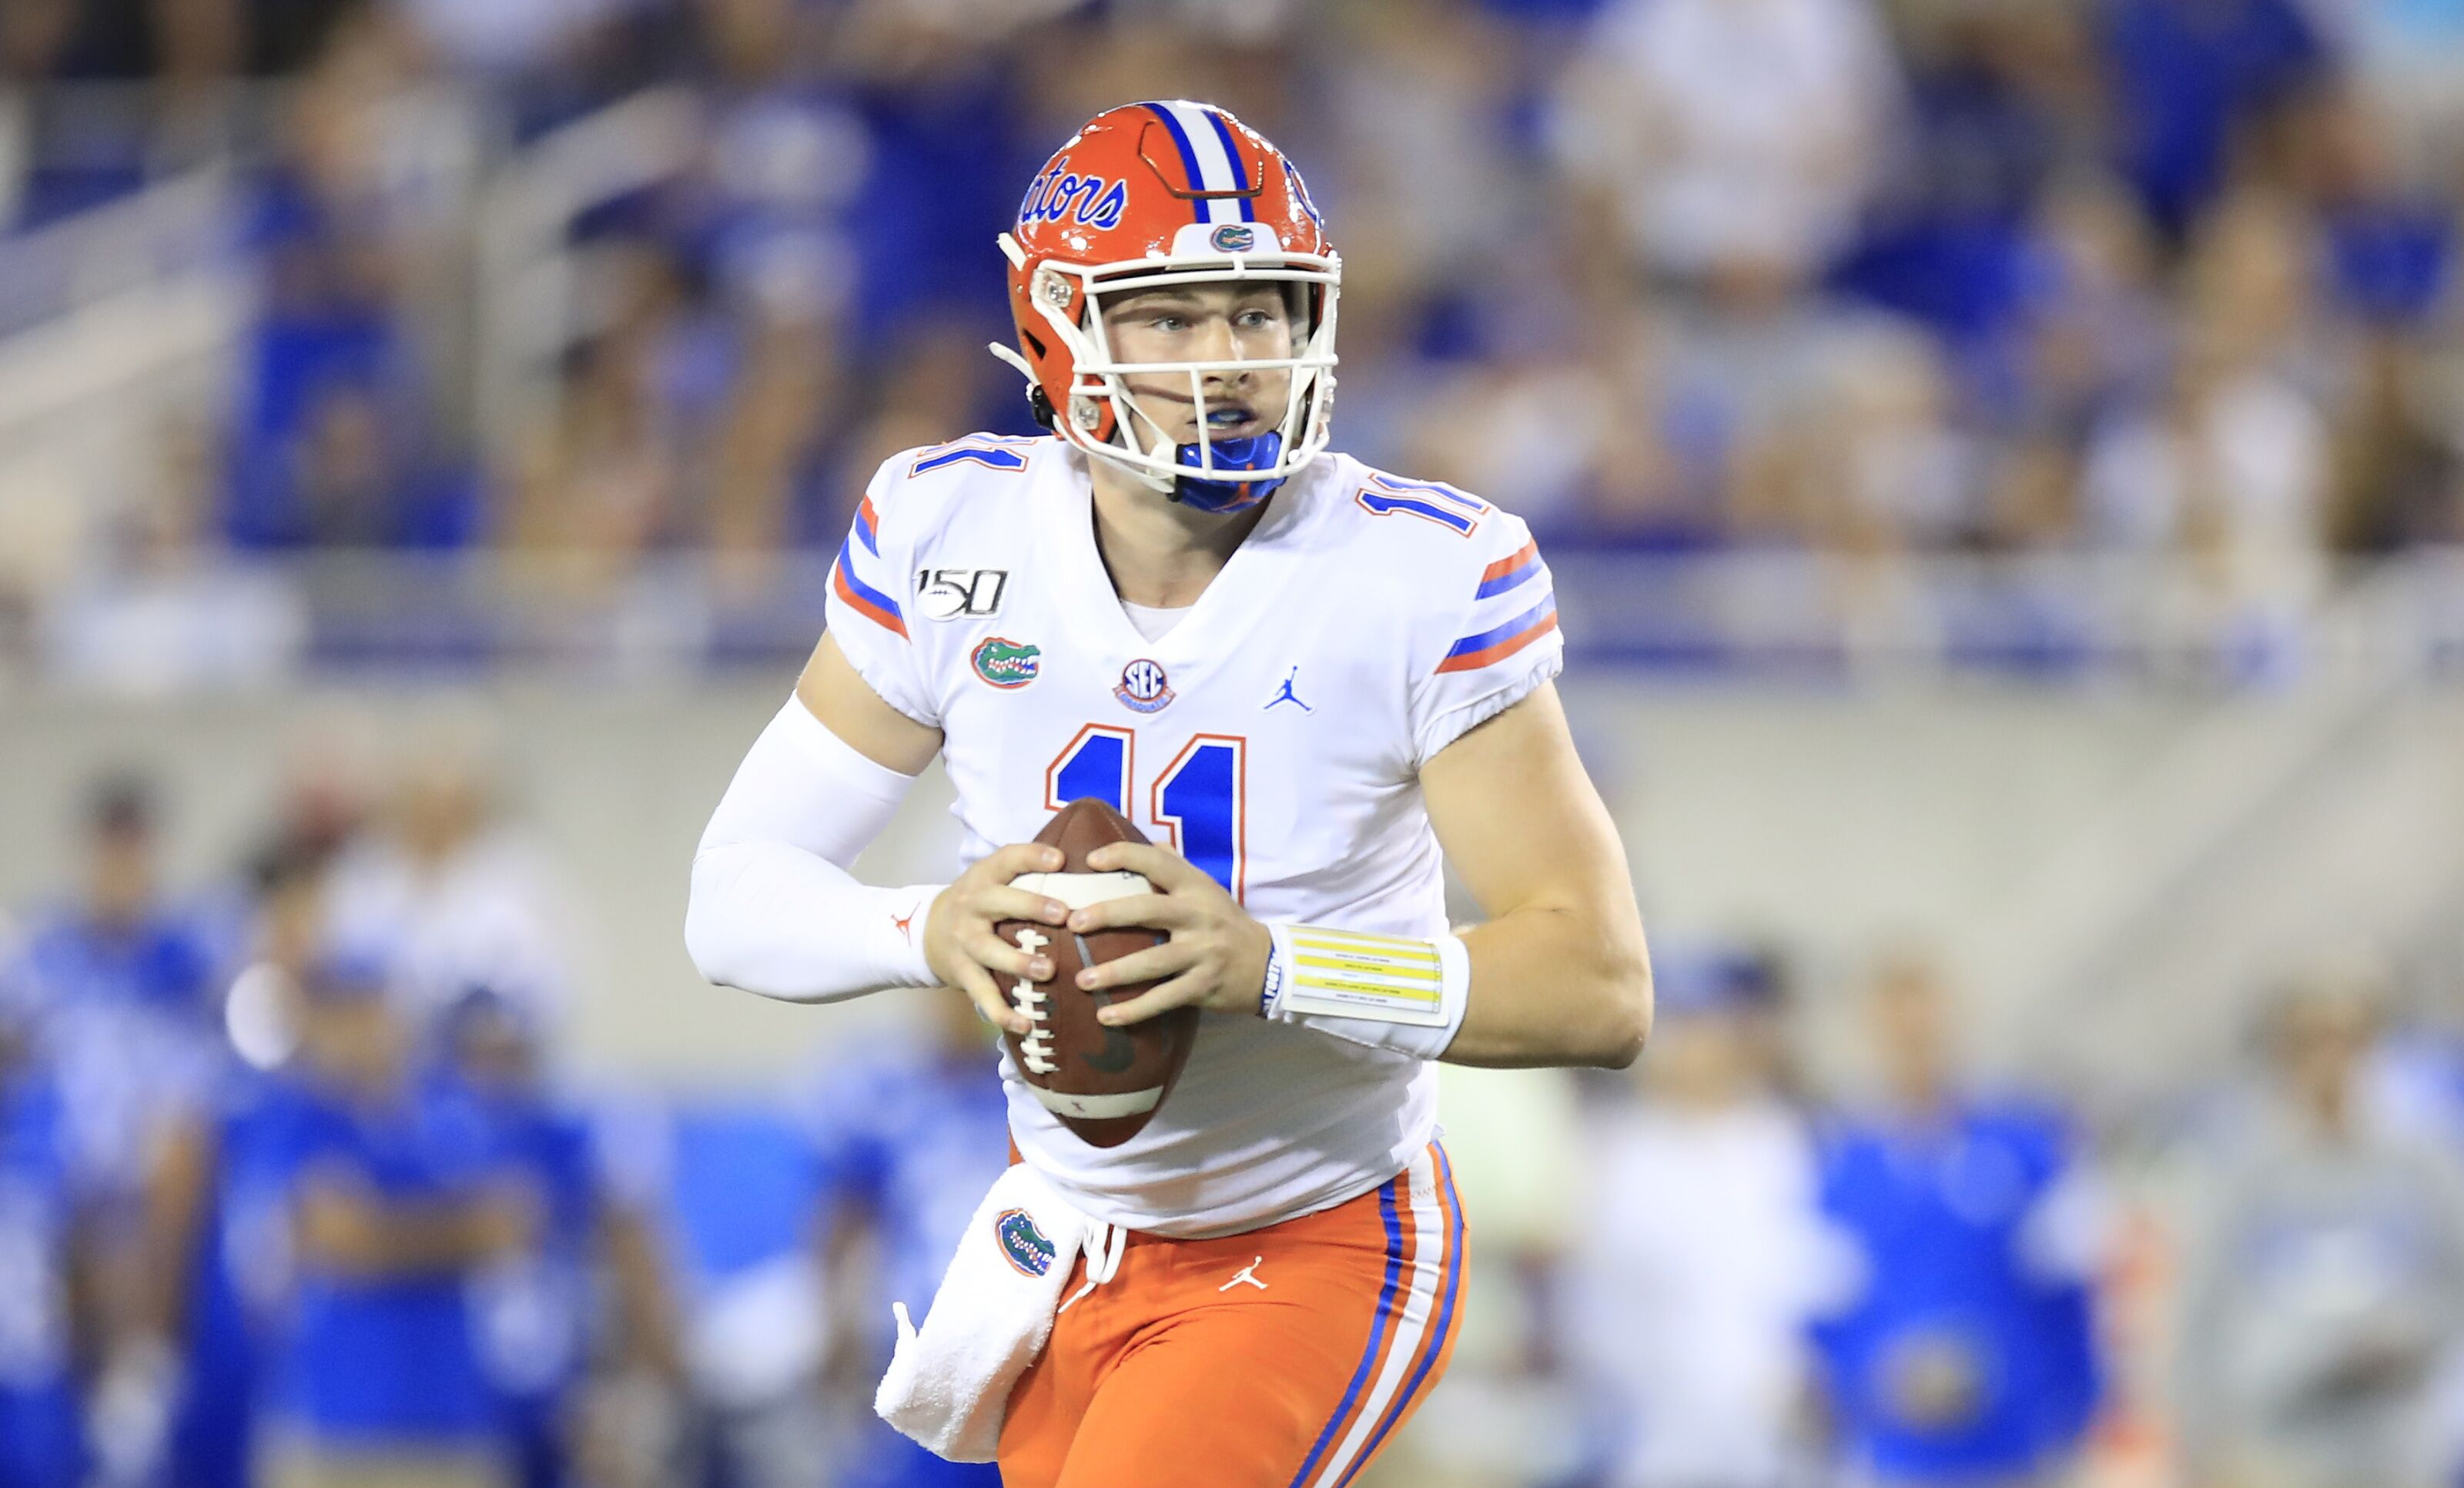 Life after Feleipe Franks: How good can Florida be with Kyle Trask?